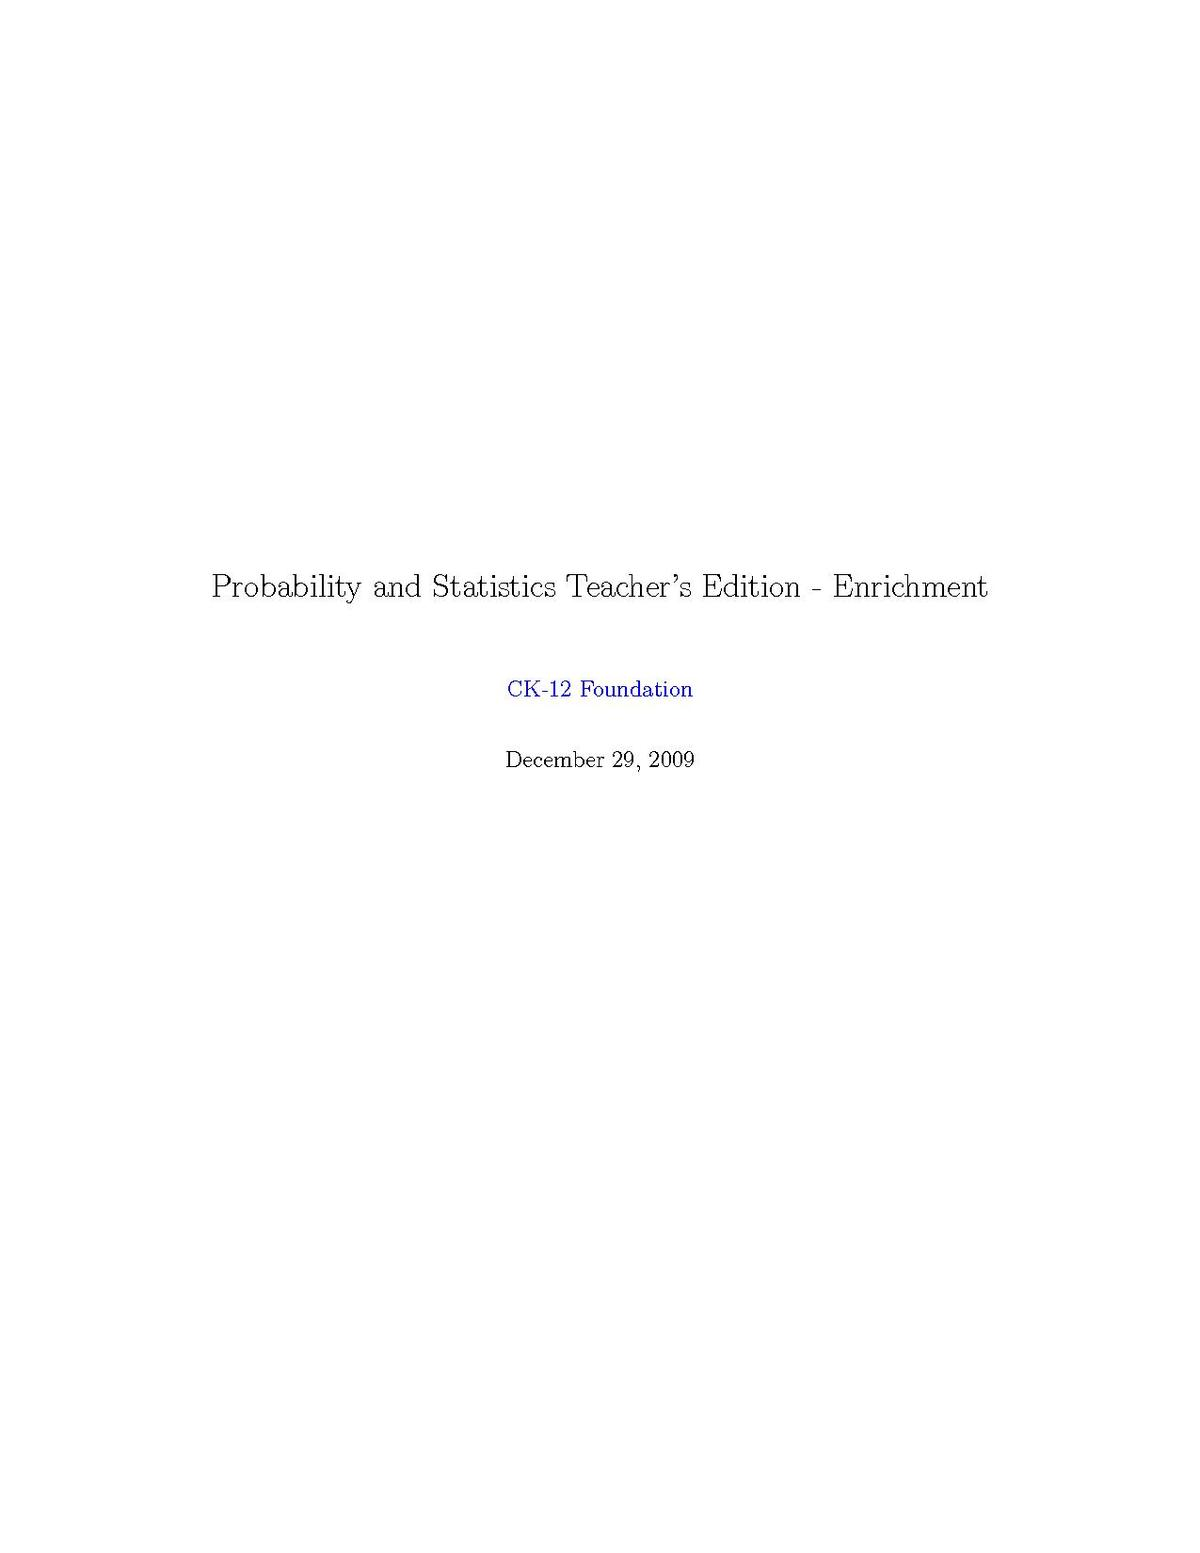 File High School Probability And Statistics Enrichment